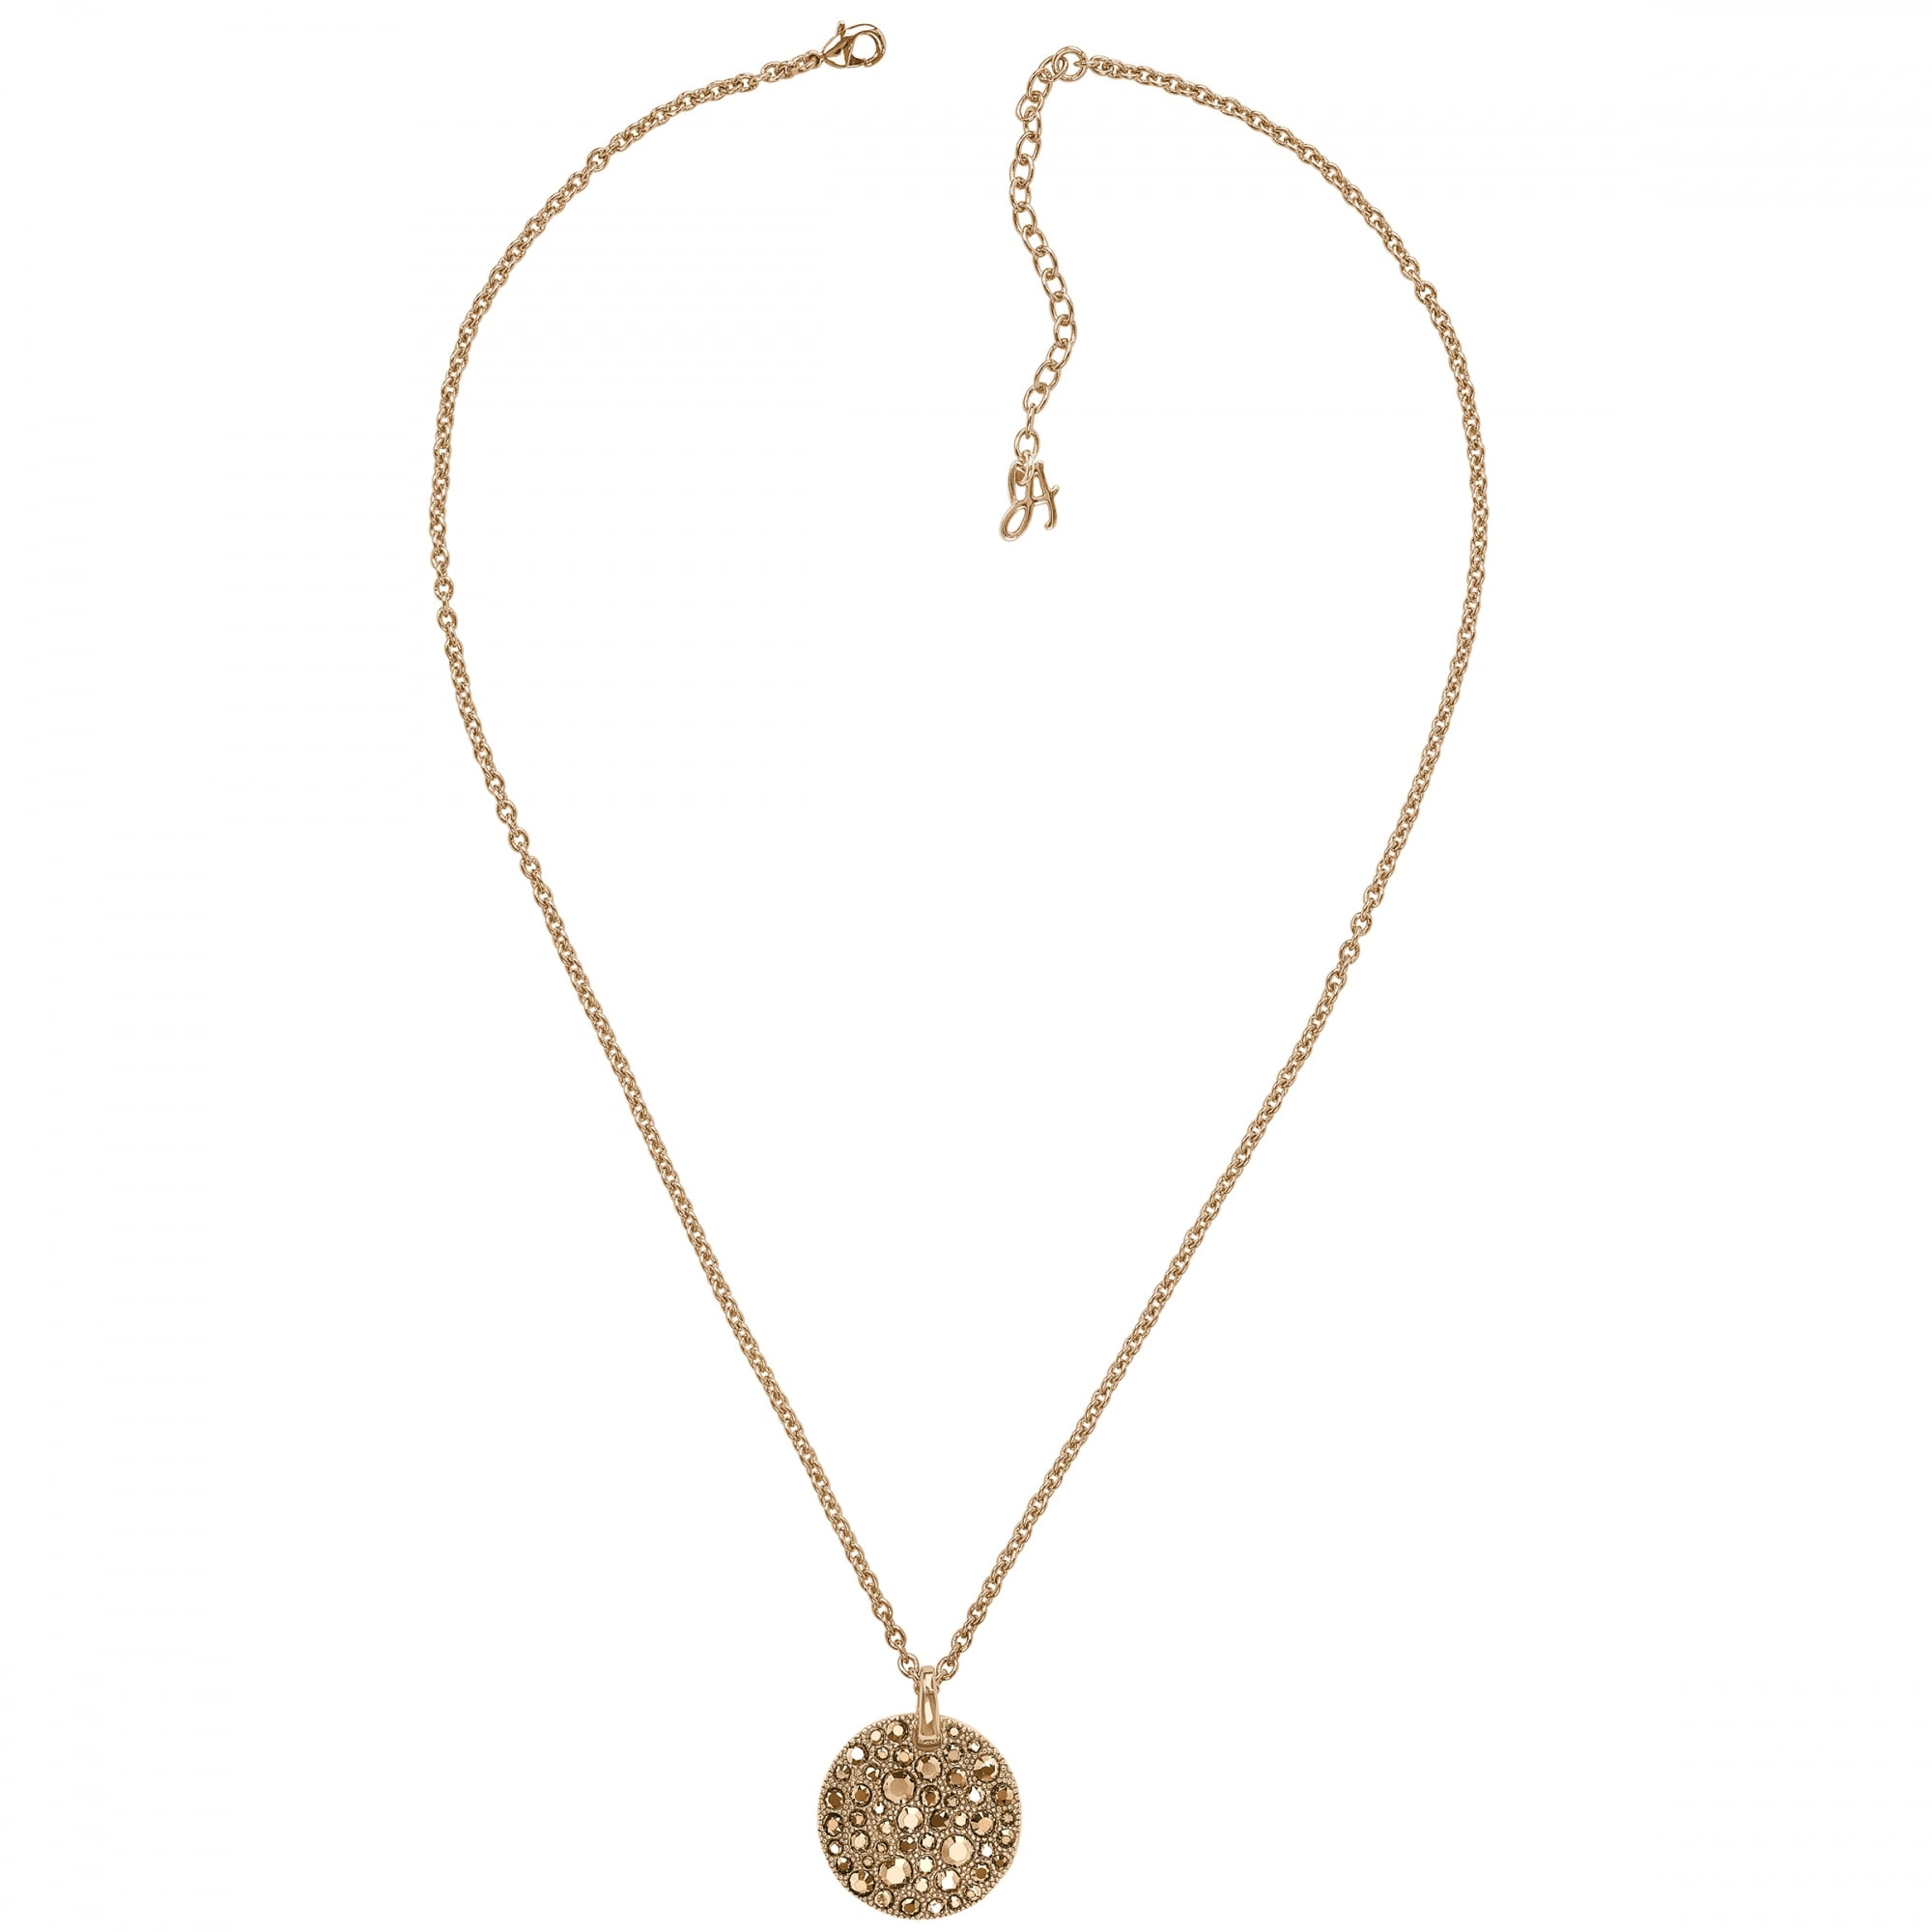 life vitality disc image necklace necklaces with chain sun ancient vermeil gold bead